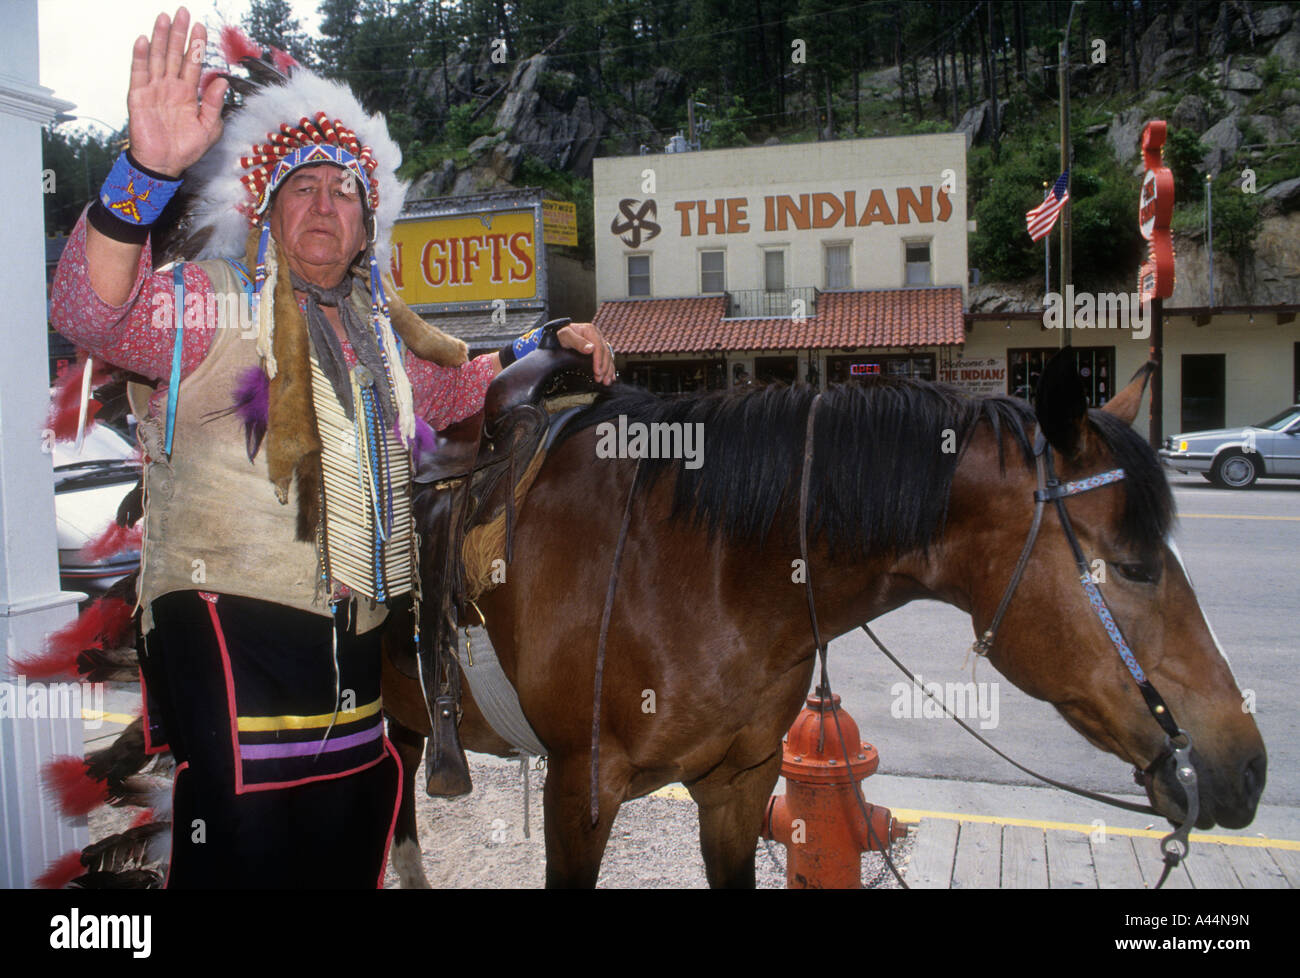 A Native American  Indian Earns A Few Bucks, By Posing For Tourist Photographs In The South Dakota Town Of Keystone. - Stock Image